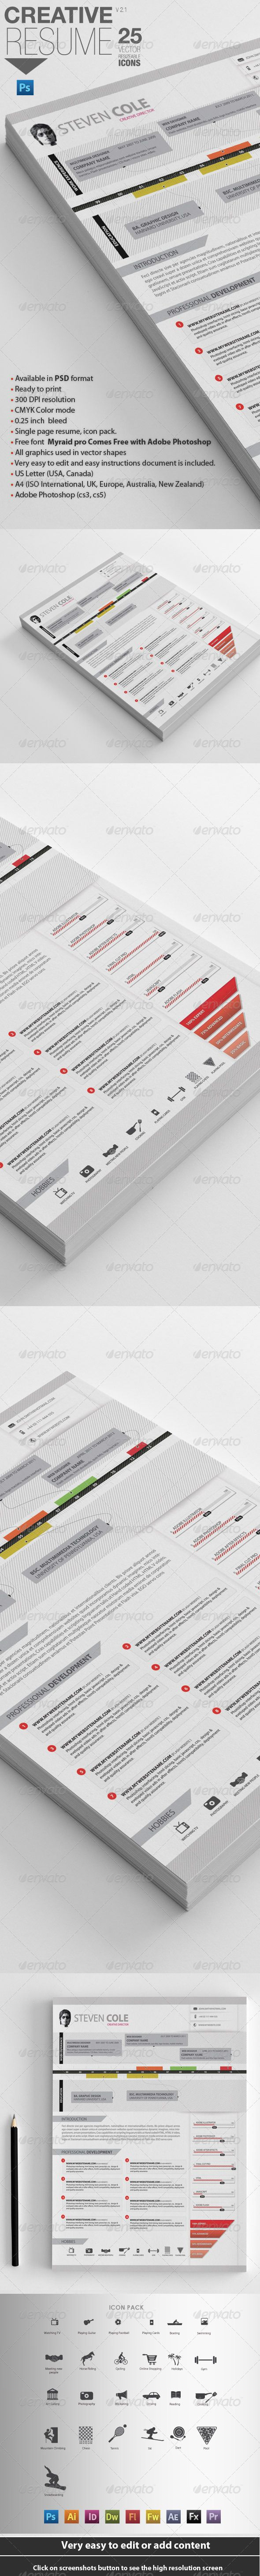 Professional Resume | For Designers — Photoshop PSD #curriculum vitae #print • Available here → https://graphicriver.net/item/professional-resume-for-designers/4112799?ref=pxcr